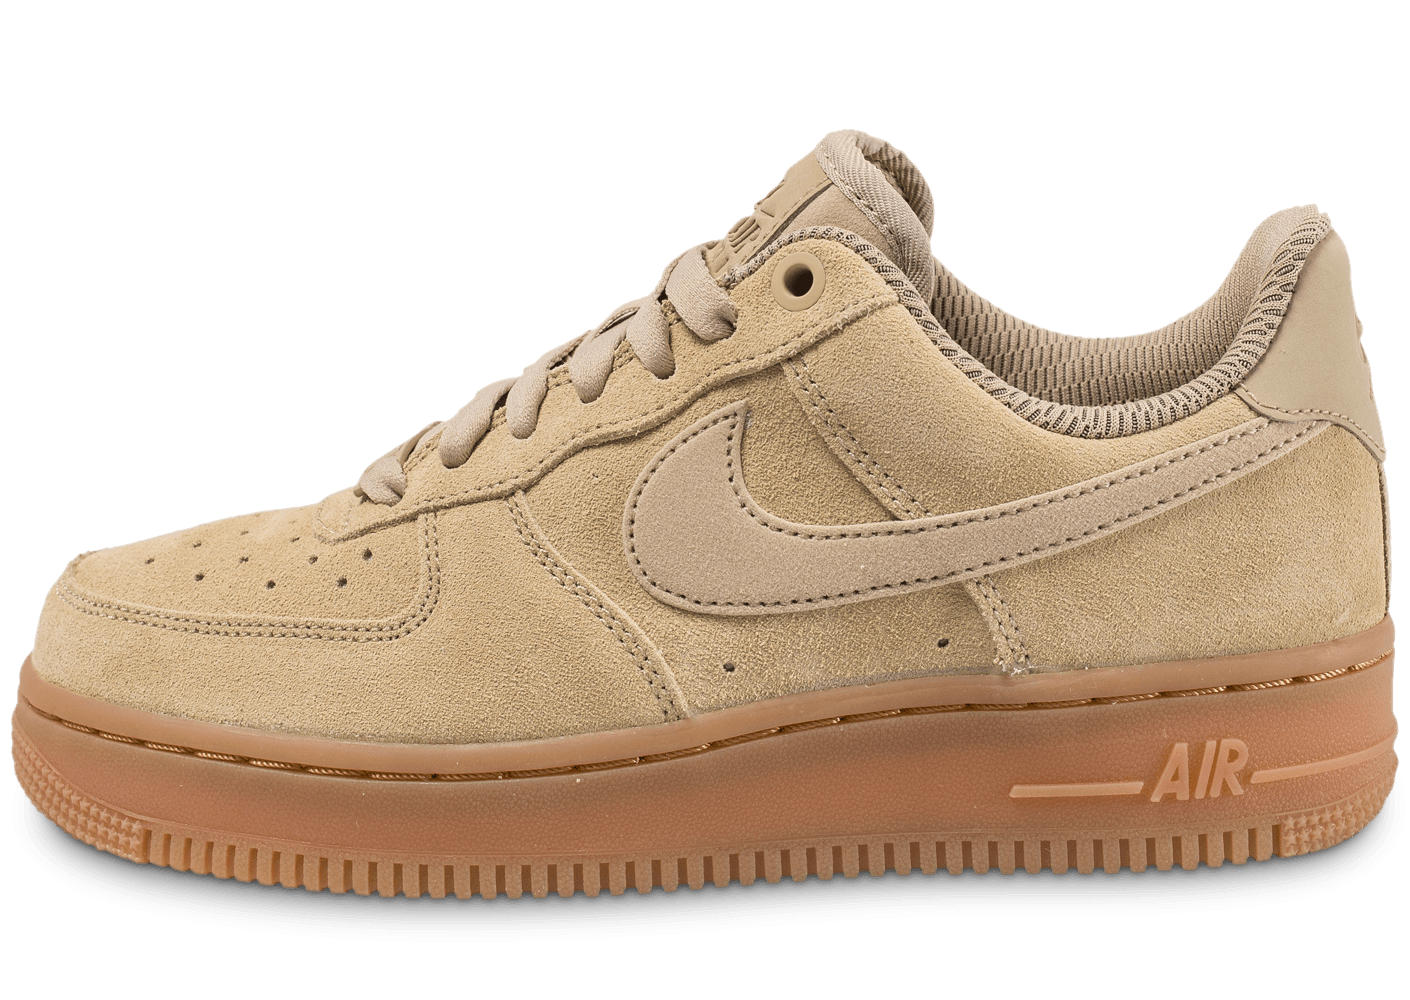 nike air force 1 low 07 se w beige chaussures black friday chausport. Black Bedroom Furniture Sets. Home Design Ideas